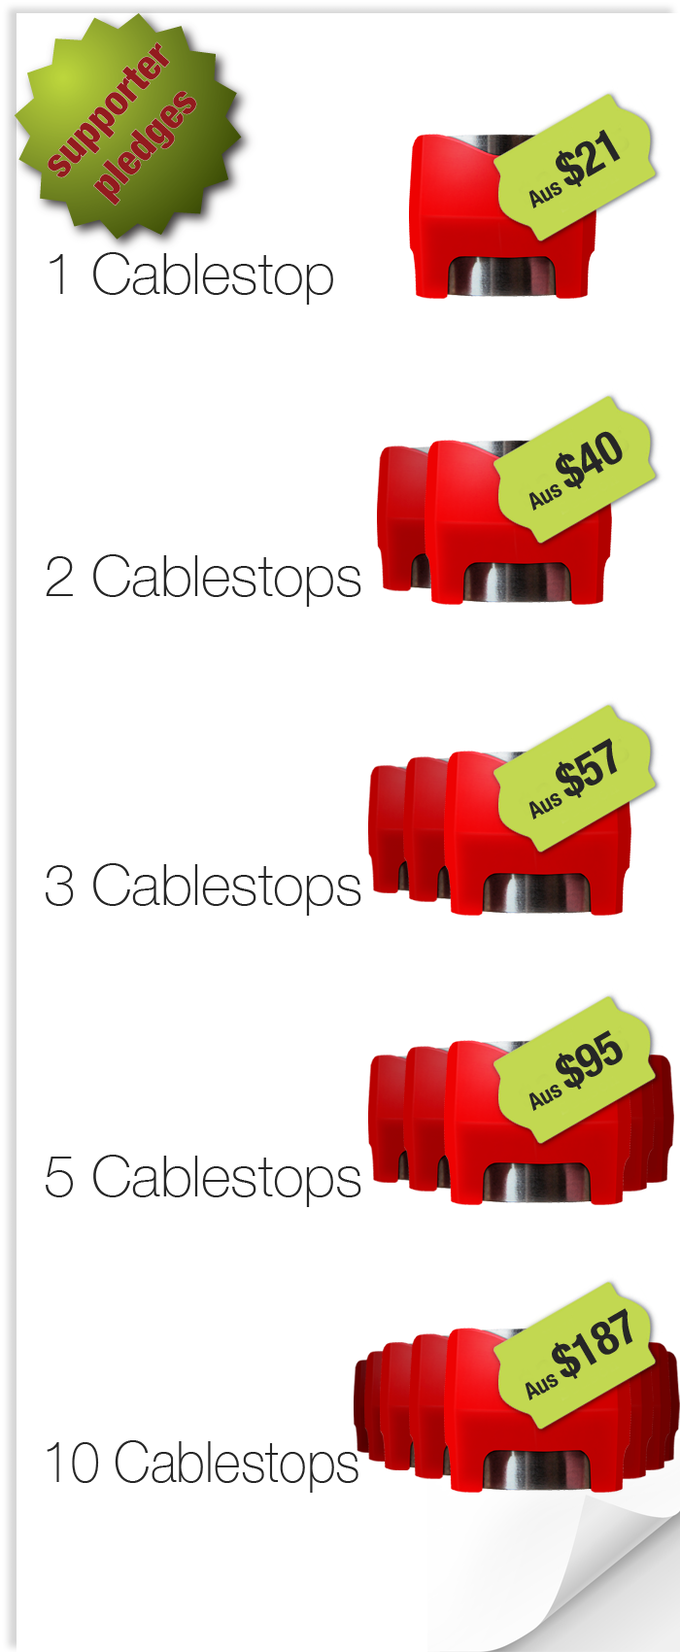 Cablestop supporter offers